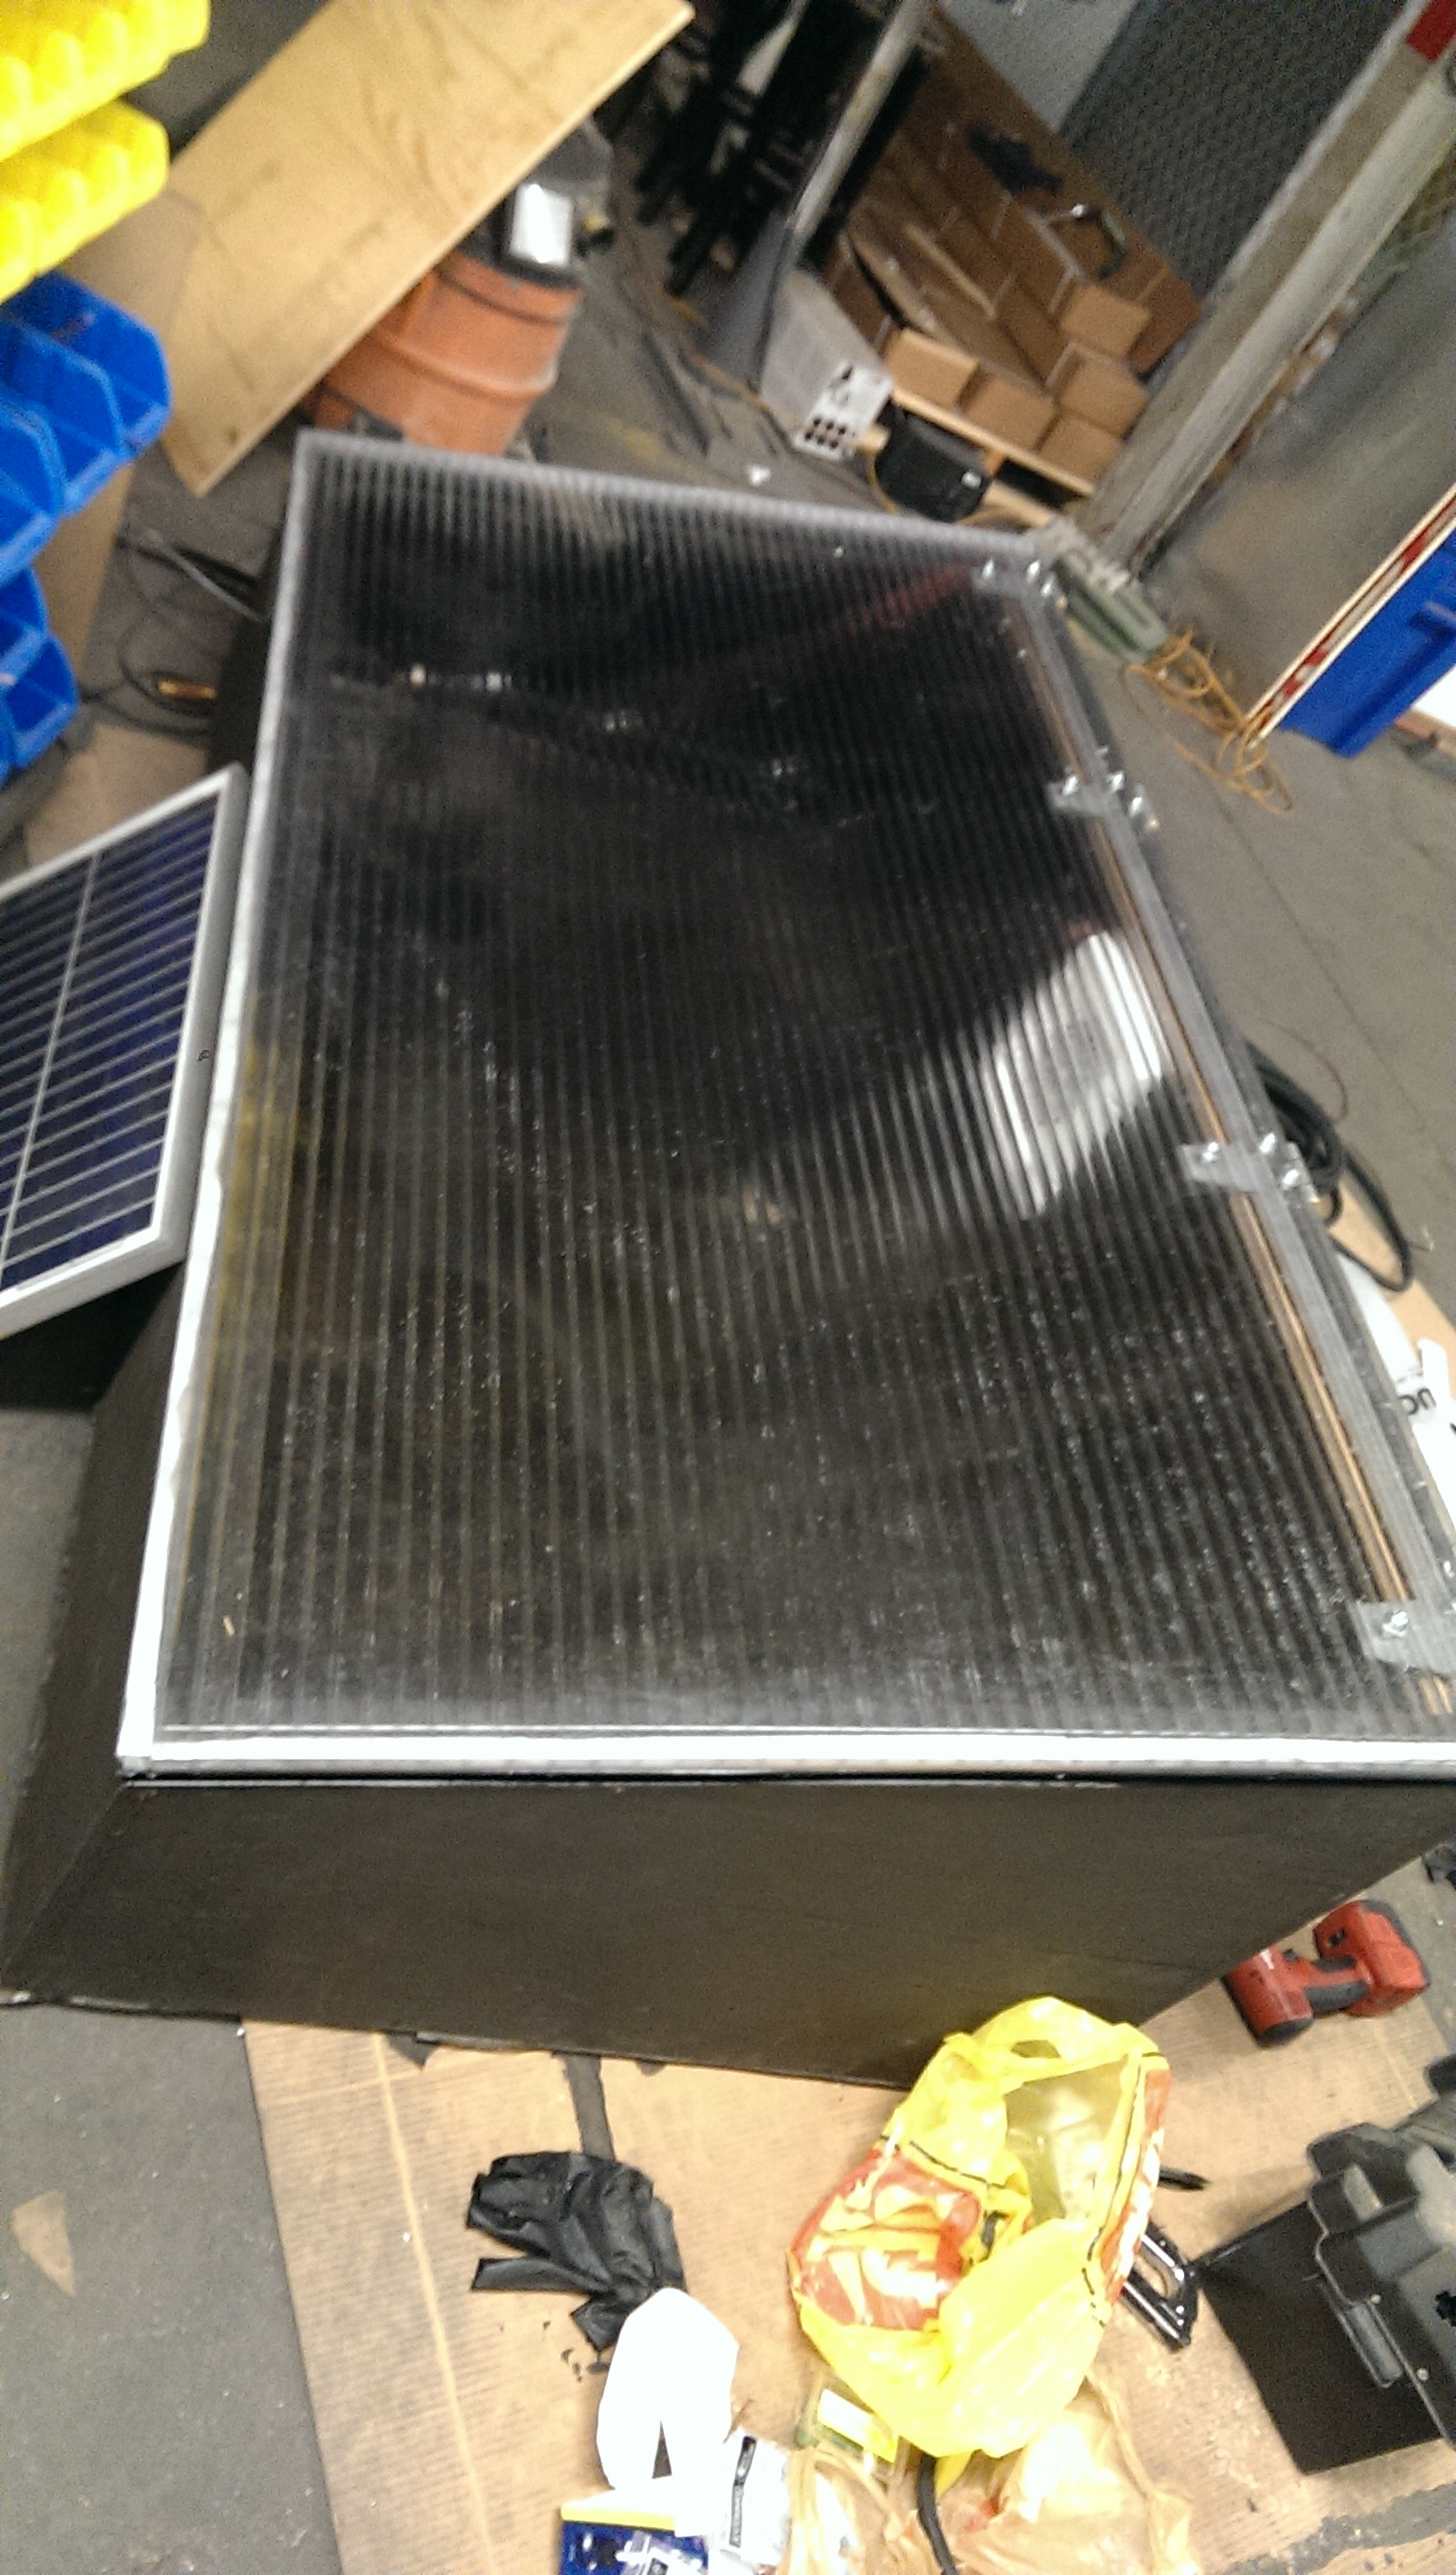 Winter Garden with Lid, Solar panel and electronics